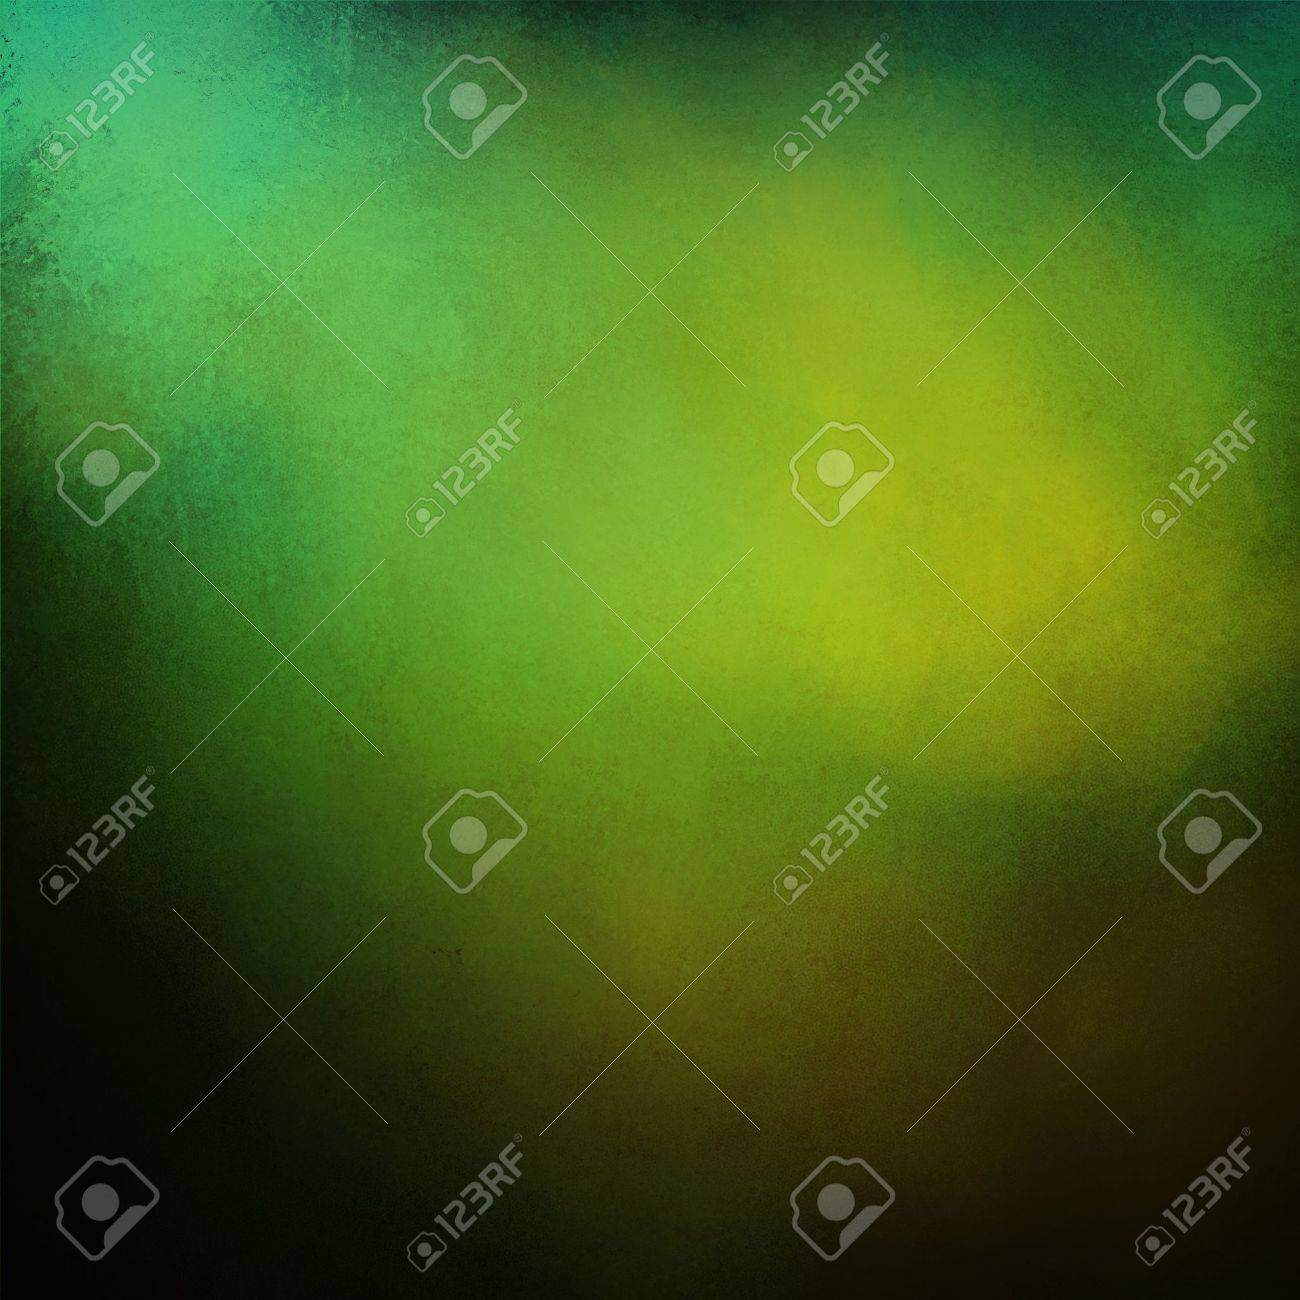 abstract green background with vintage grunge background texture design with elegant antique paint on wall illustration, Christmas color paper, web background templates, black grungy background paint Stock Photo - 18414260